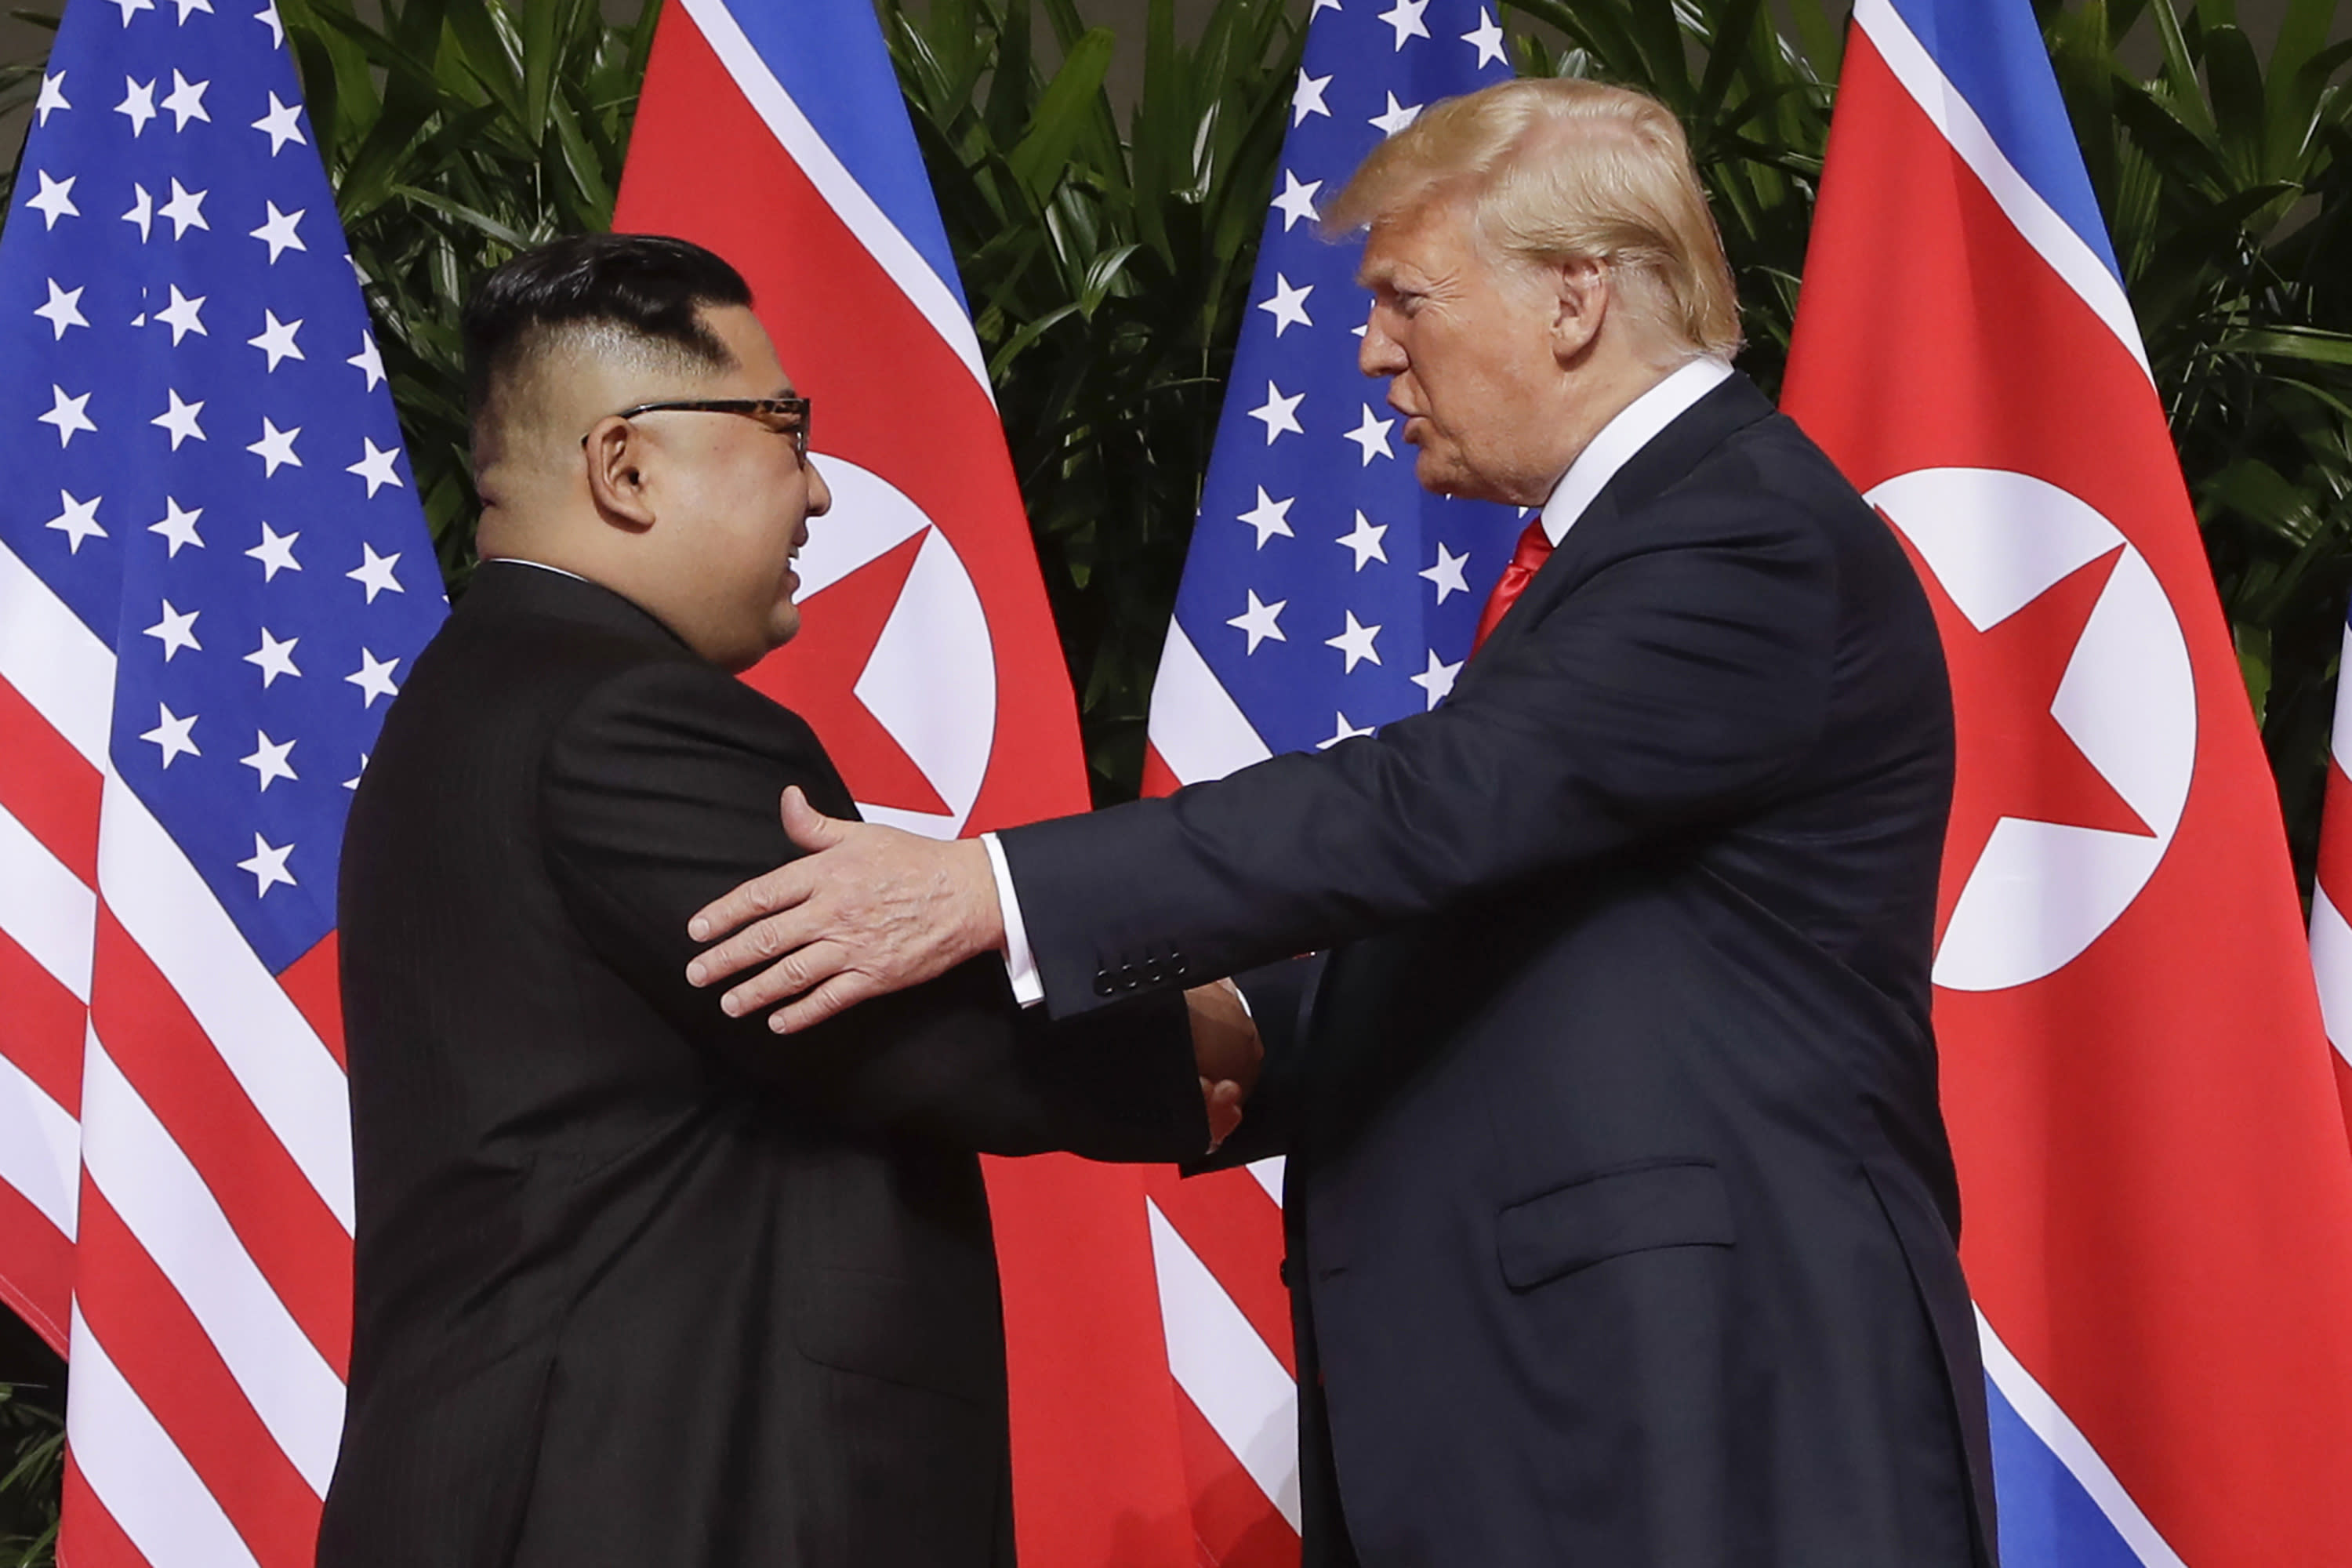 Trump wants another NK summit only if progress is likely: Pompeo